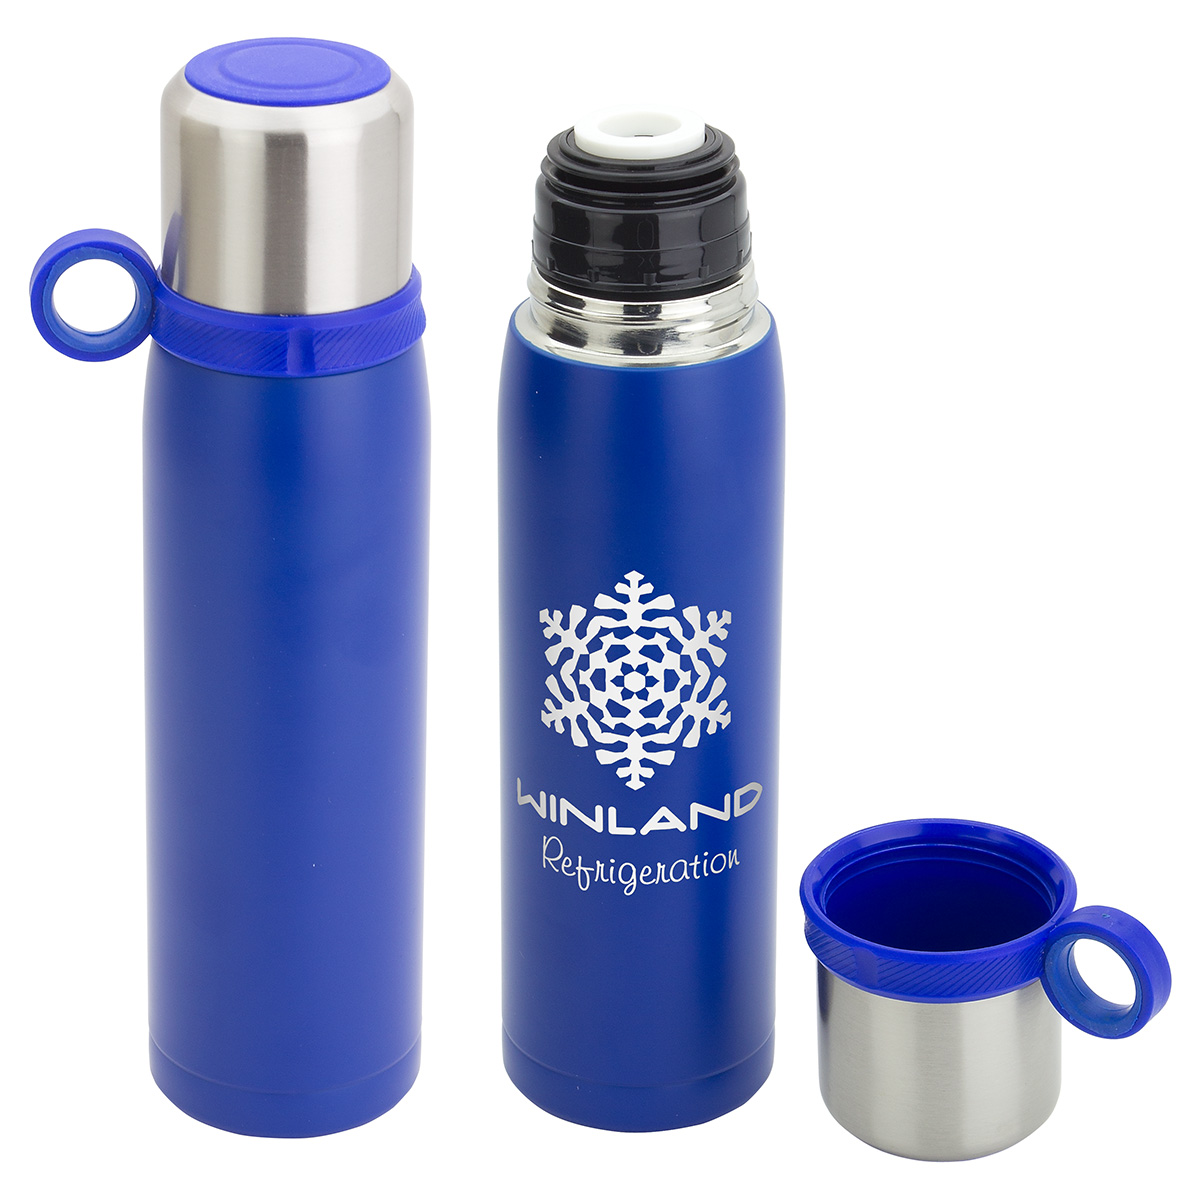 All-Day 20 oz Insulated Bottle with TempSeal Technology, DBT-AD18, 1 Colour Imprint